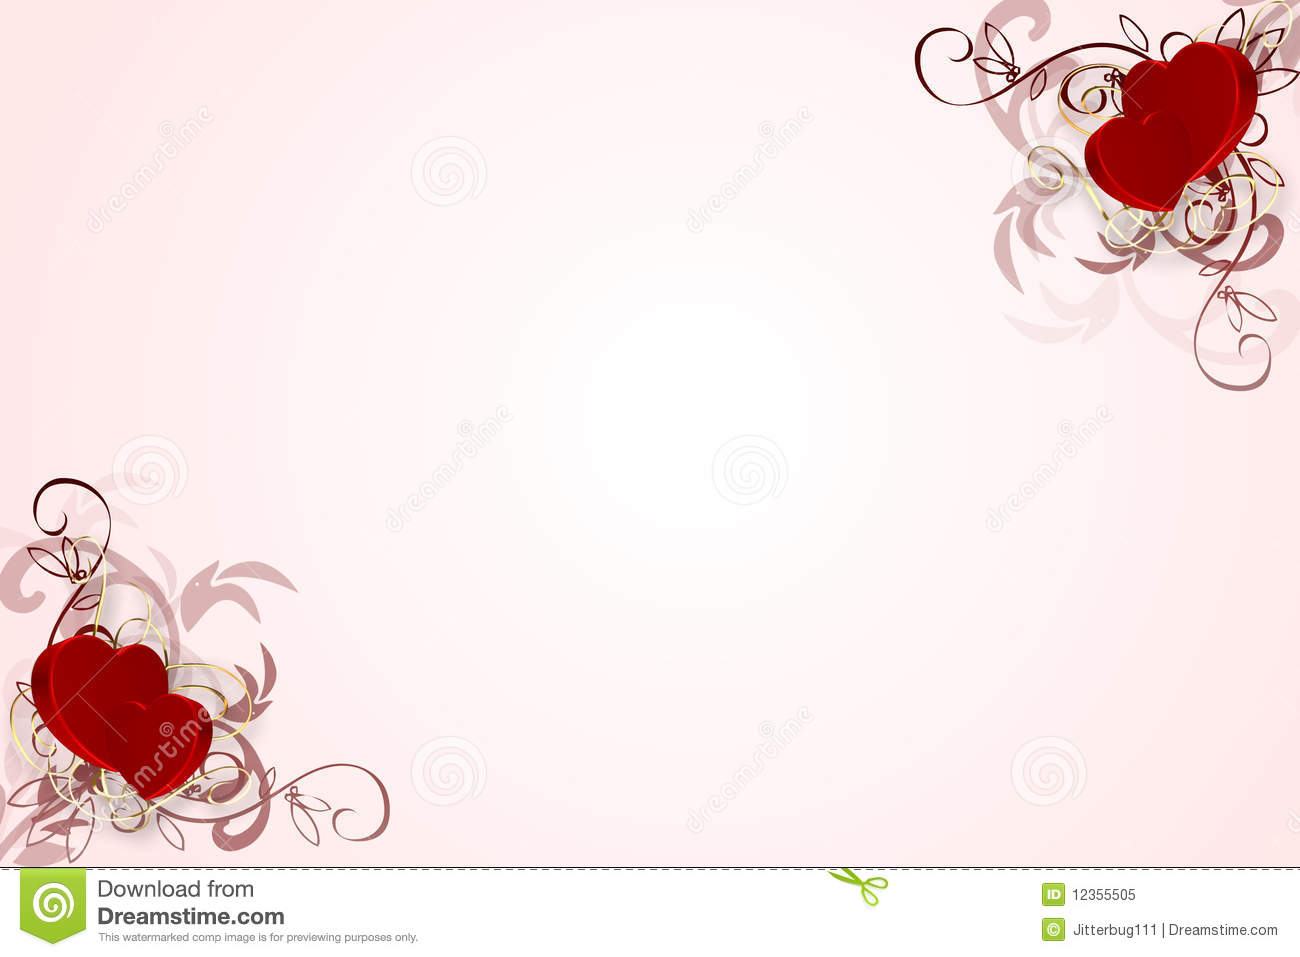 Decorative Heart Background Royalty Free Stock Photo - Image: 12355505